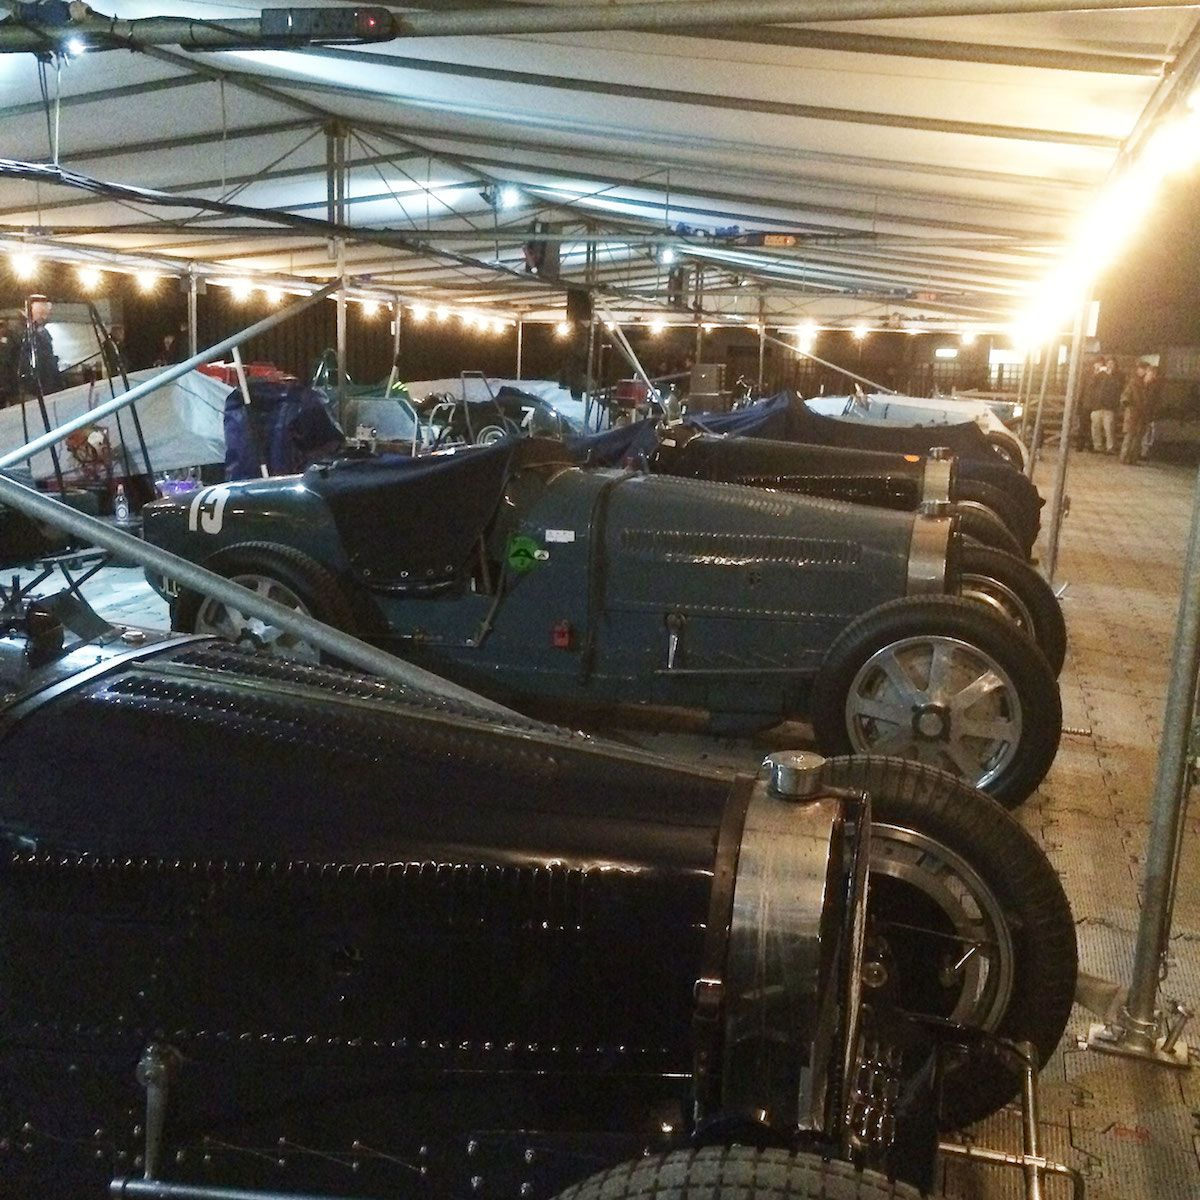 A collection of priceless Bugatti Type 35 and 51 racers at the 73rd Goodwood Members' Meeting